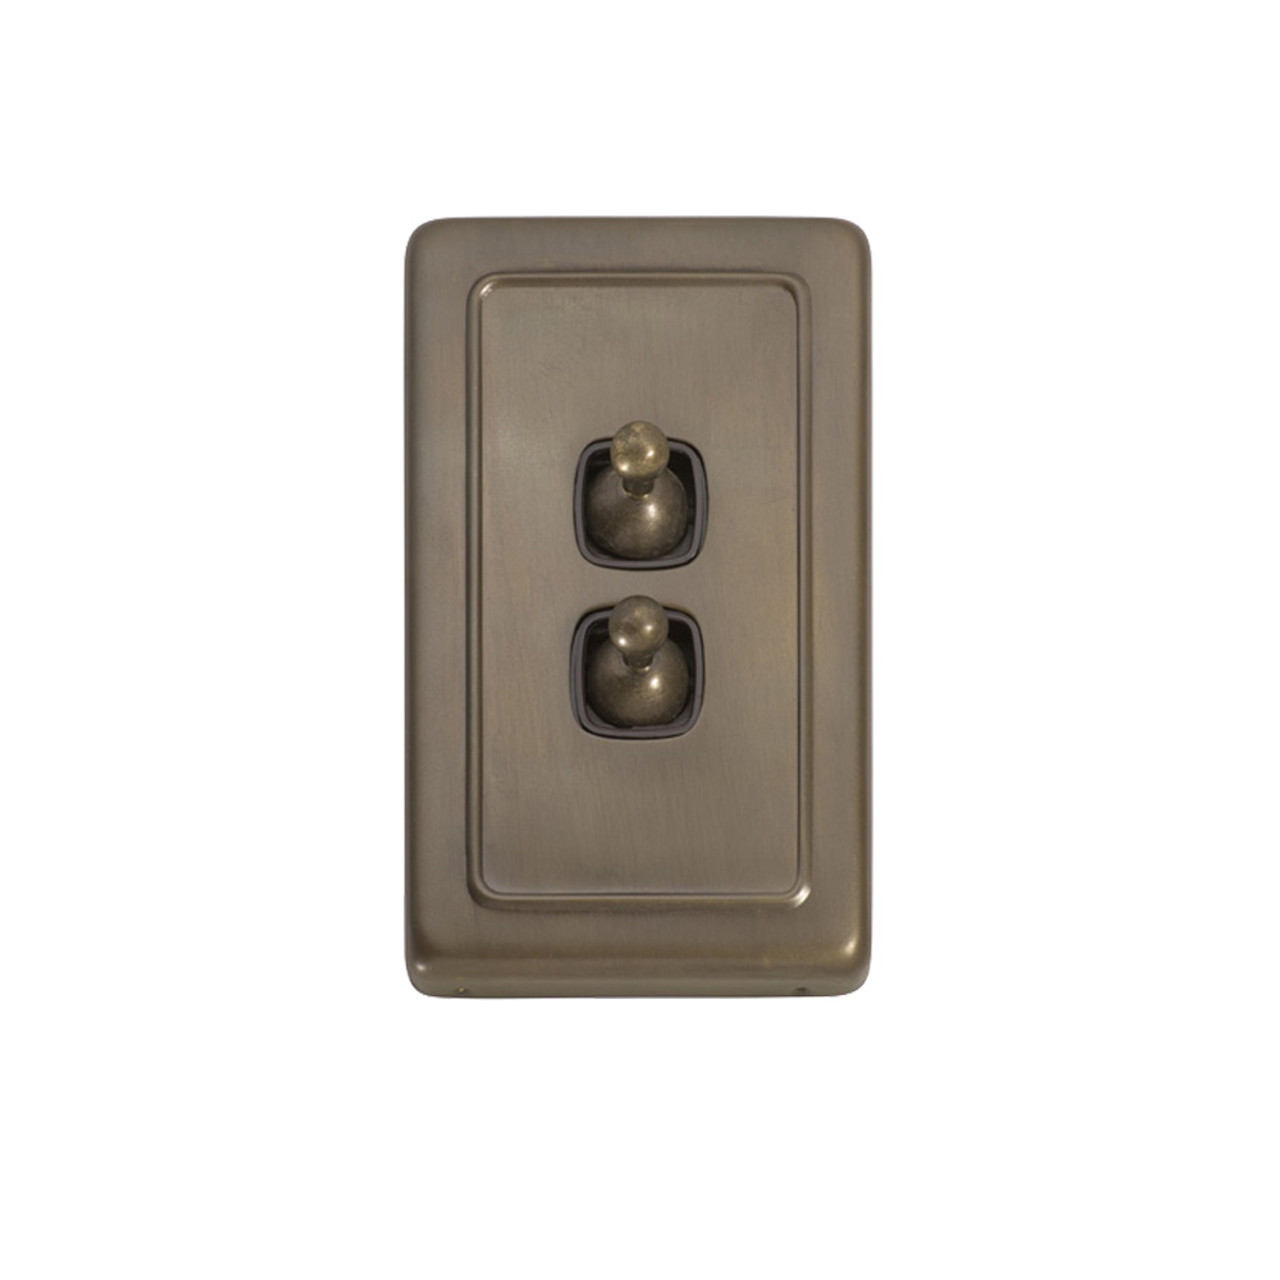 2 Gang Flat Plate Heritage Light Switches - Antique Brass Toggle 5893